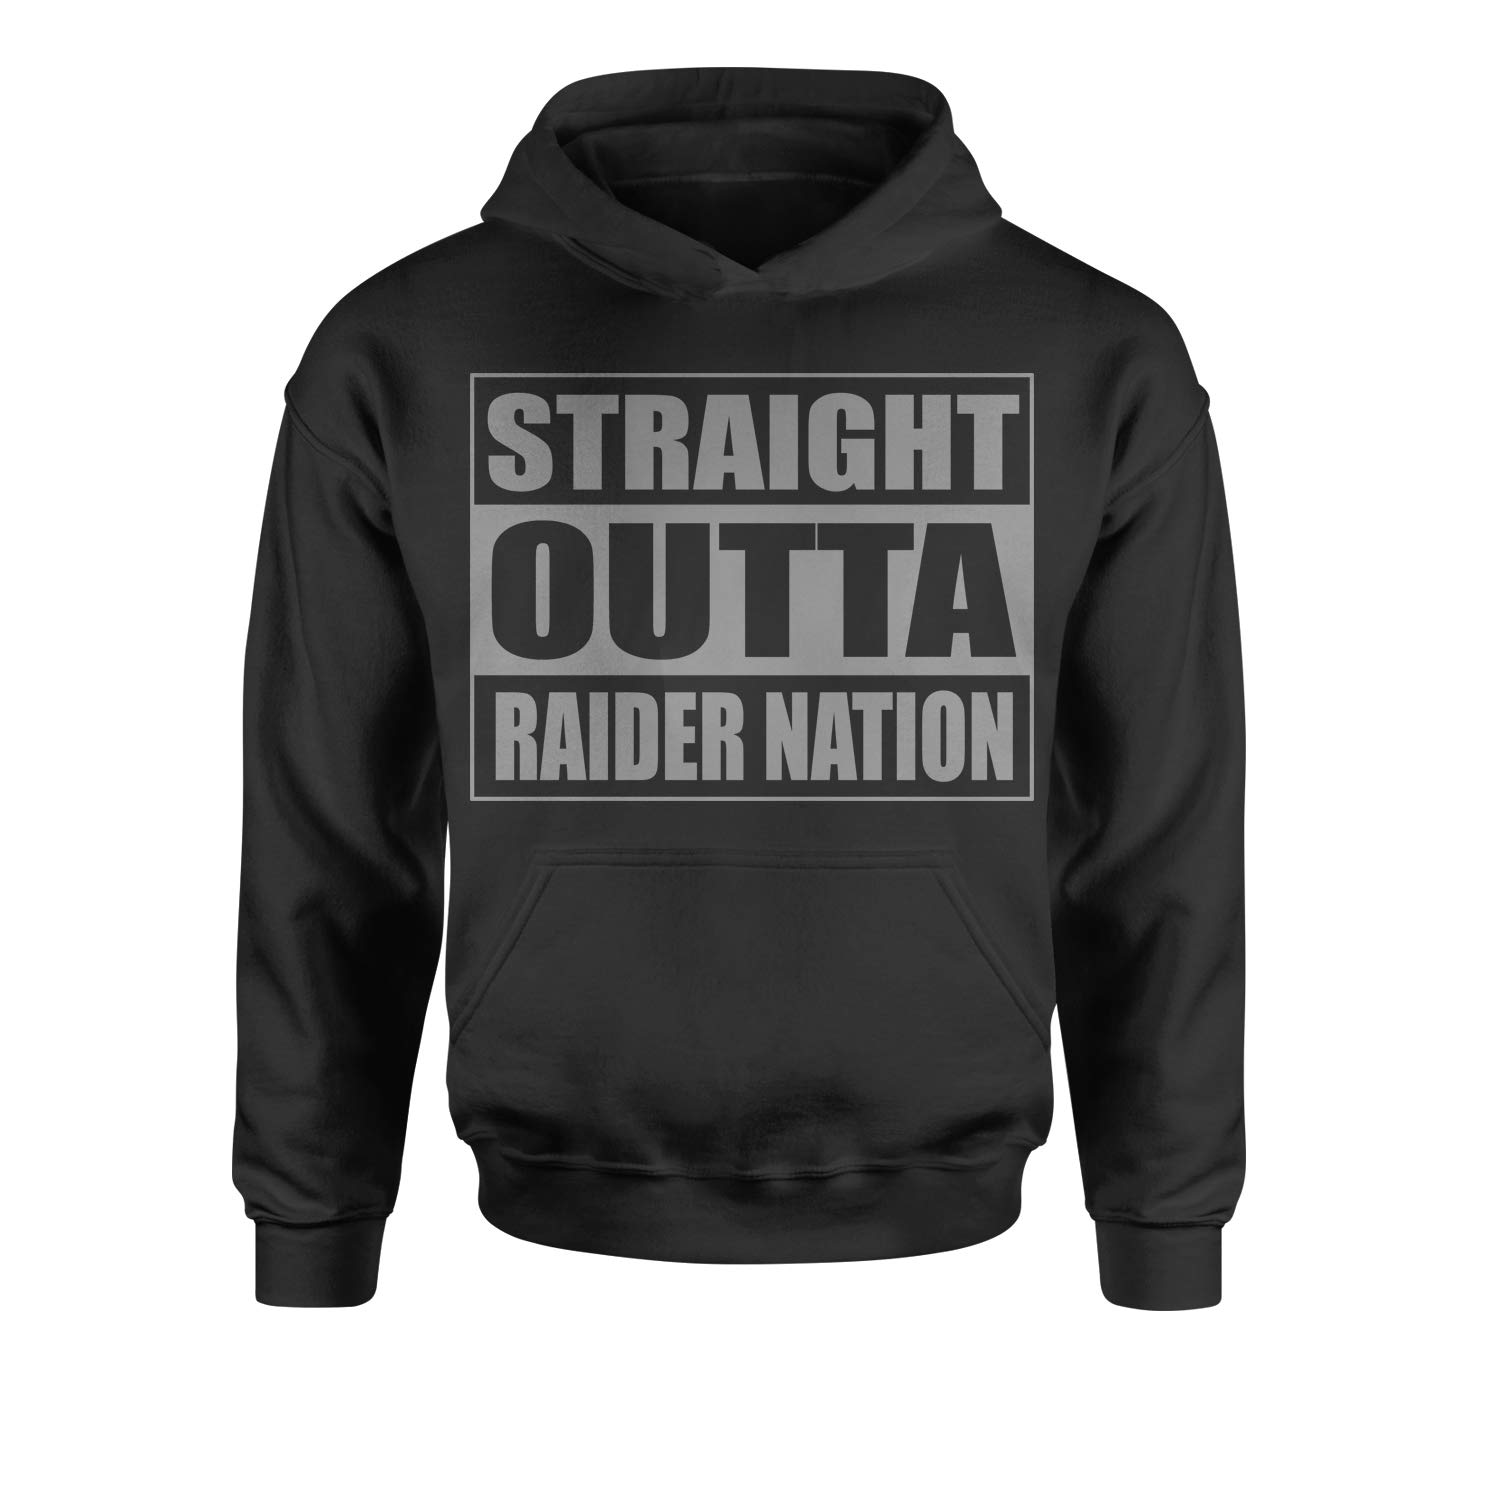 Motivated Culture Straight Outta Raider Nation Youth-Sized Hoodie